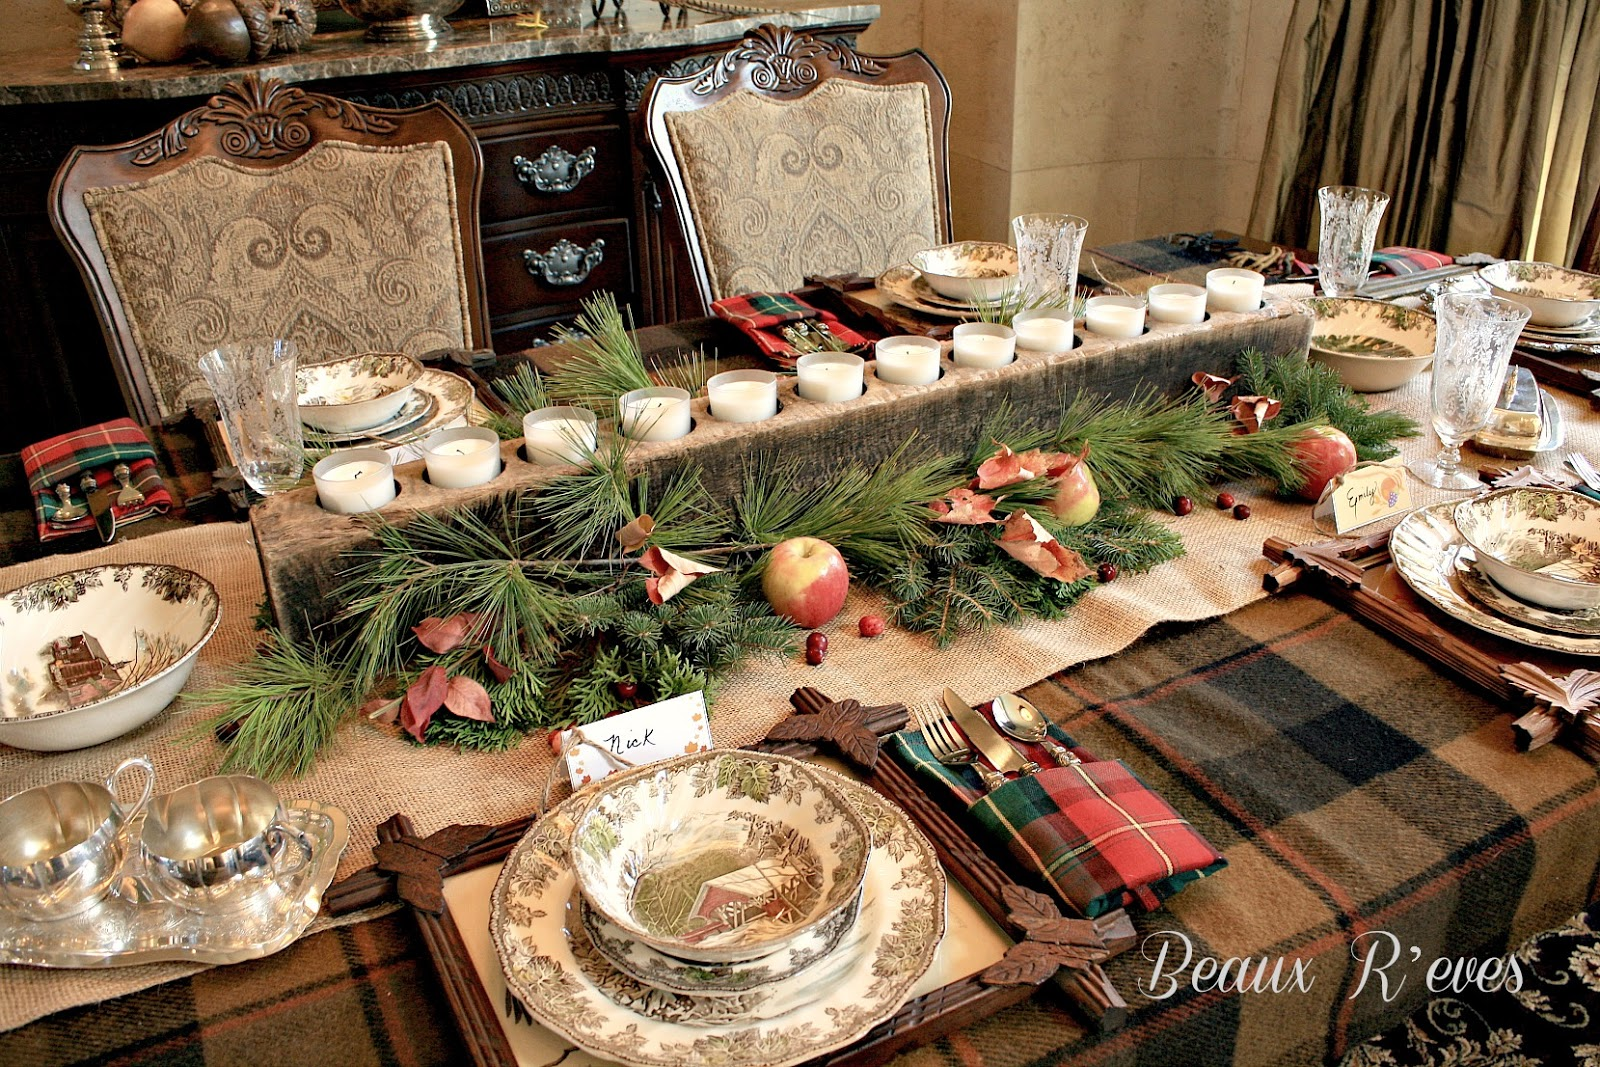 Beaux r eves rustic thanksgiving table